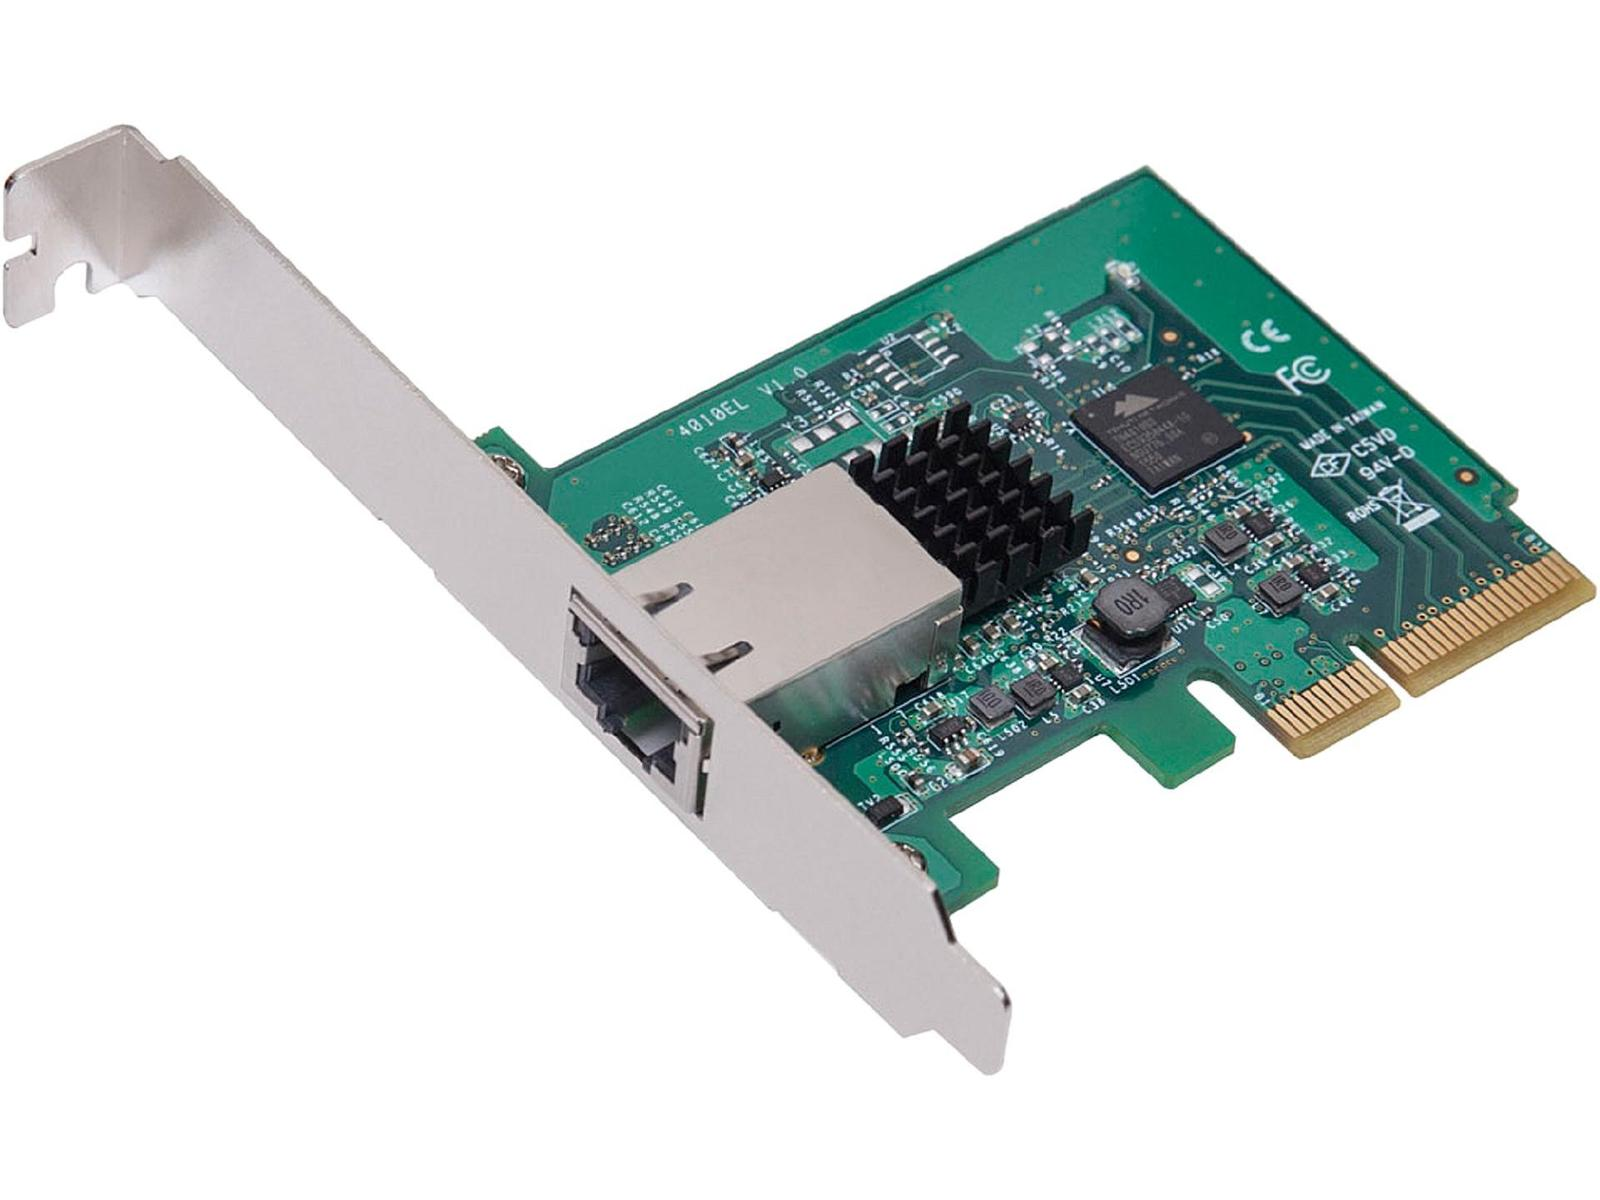 Syba SY-PEX24056 PCIe x4 10 Gbit/s Network Adapter